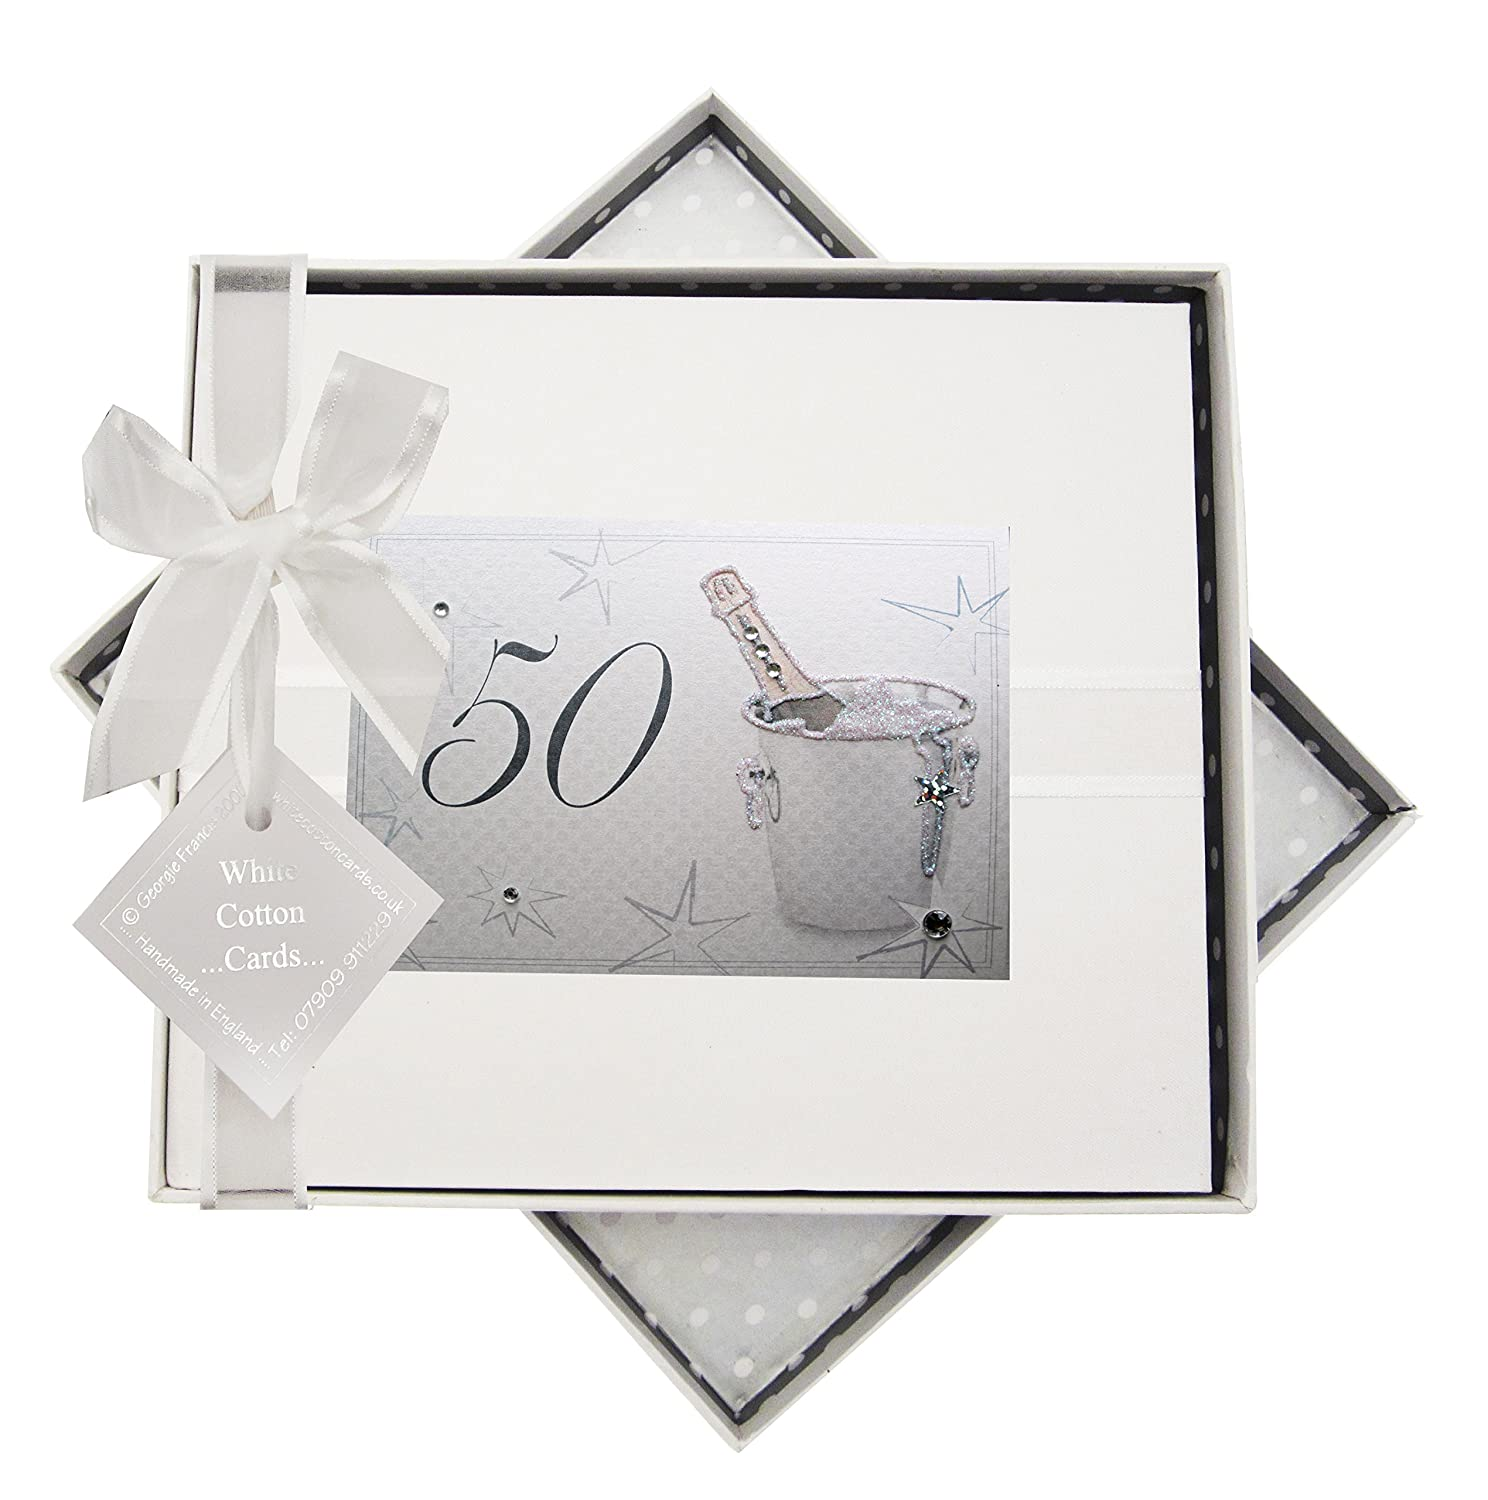 50th Birthday, Guest Book, Champagne Bucket White Cotton Cards AC50G